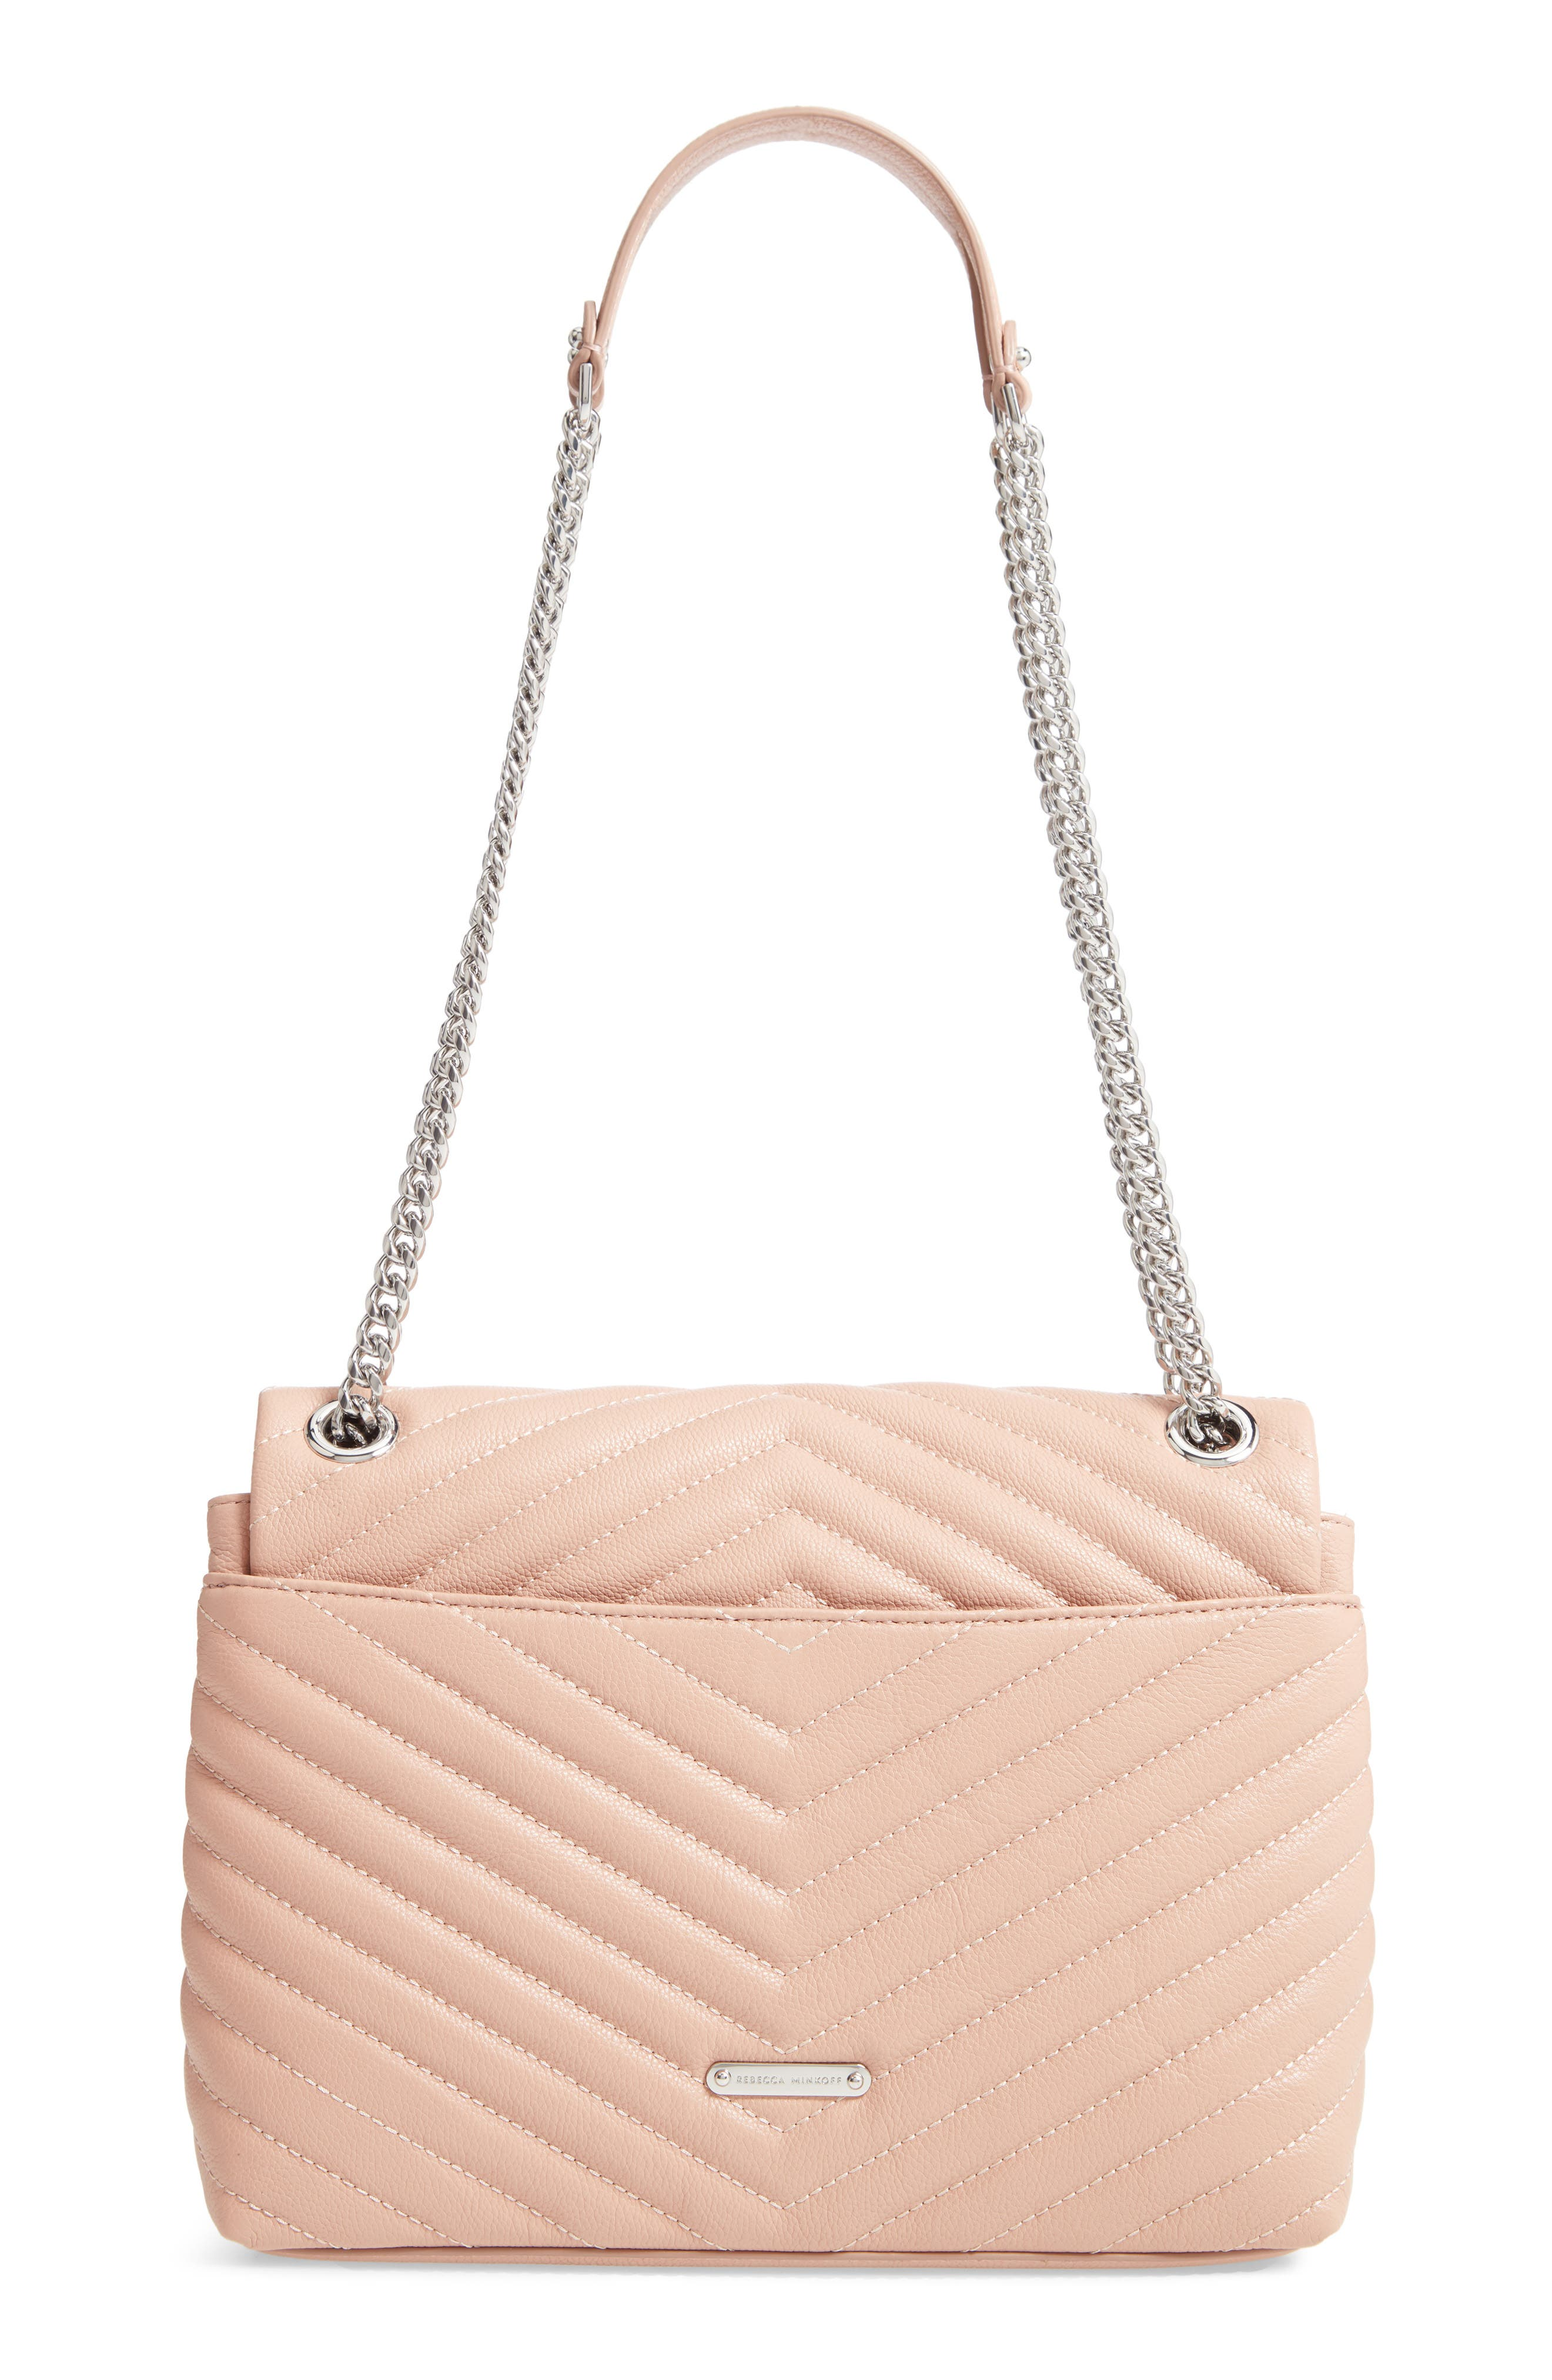 Edie Flap Quilted Leather Shoulder Bag,                             Alternate thumbnail 3, color,                             DOE